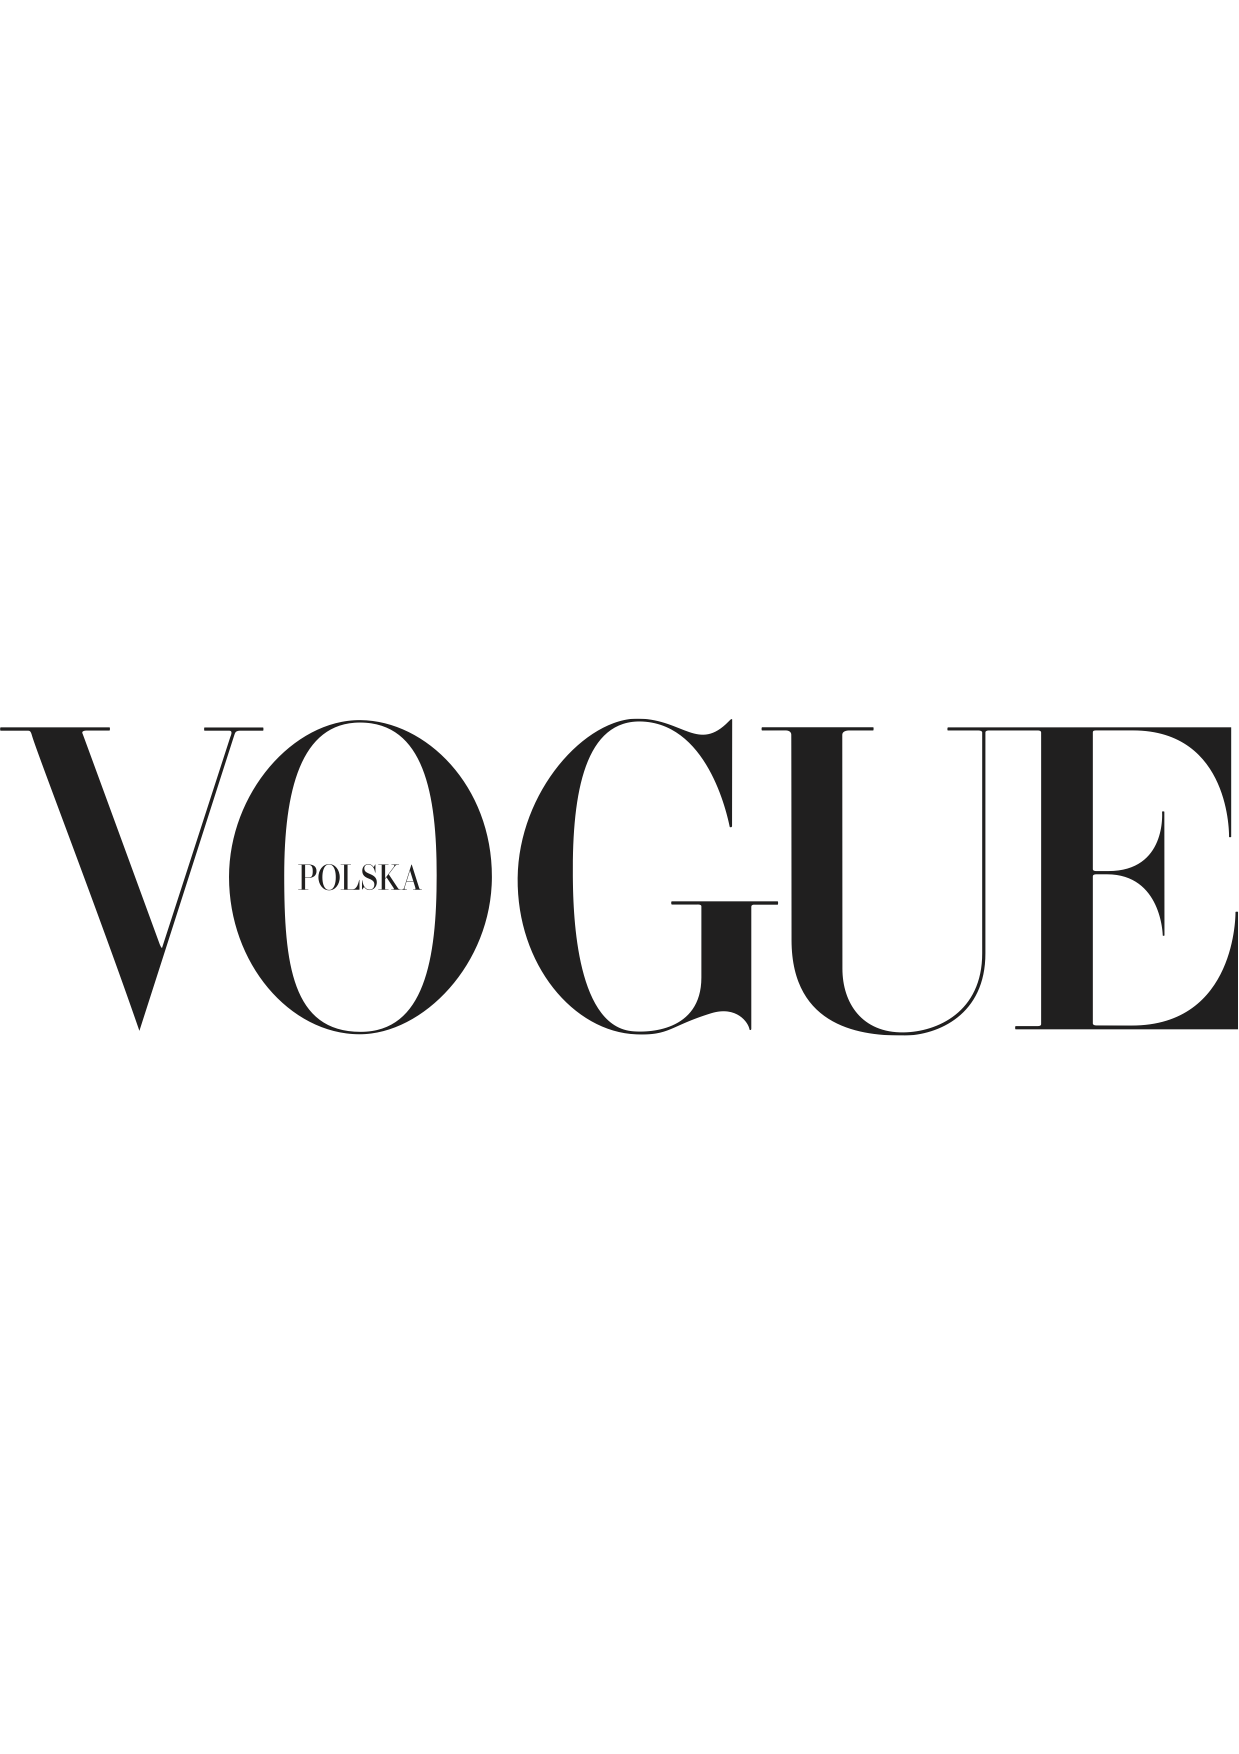 https://www.vogue.pl/